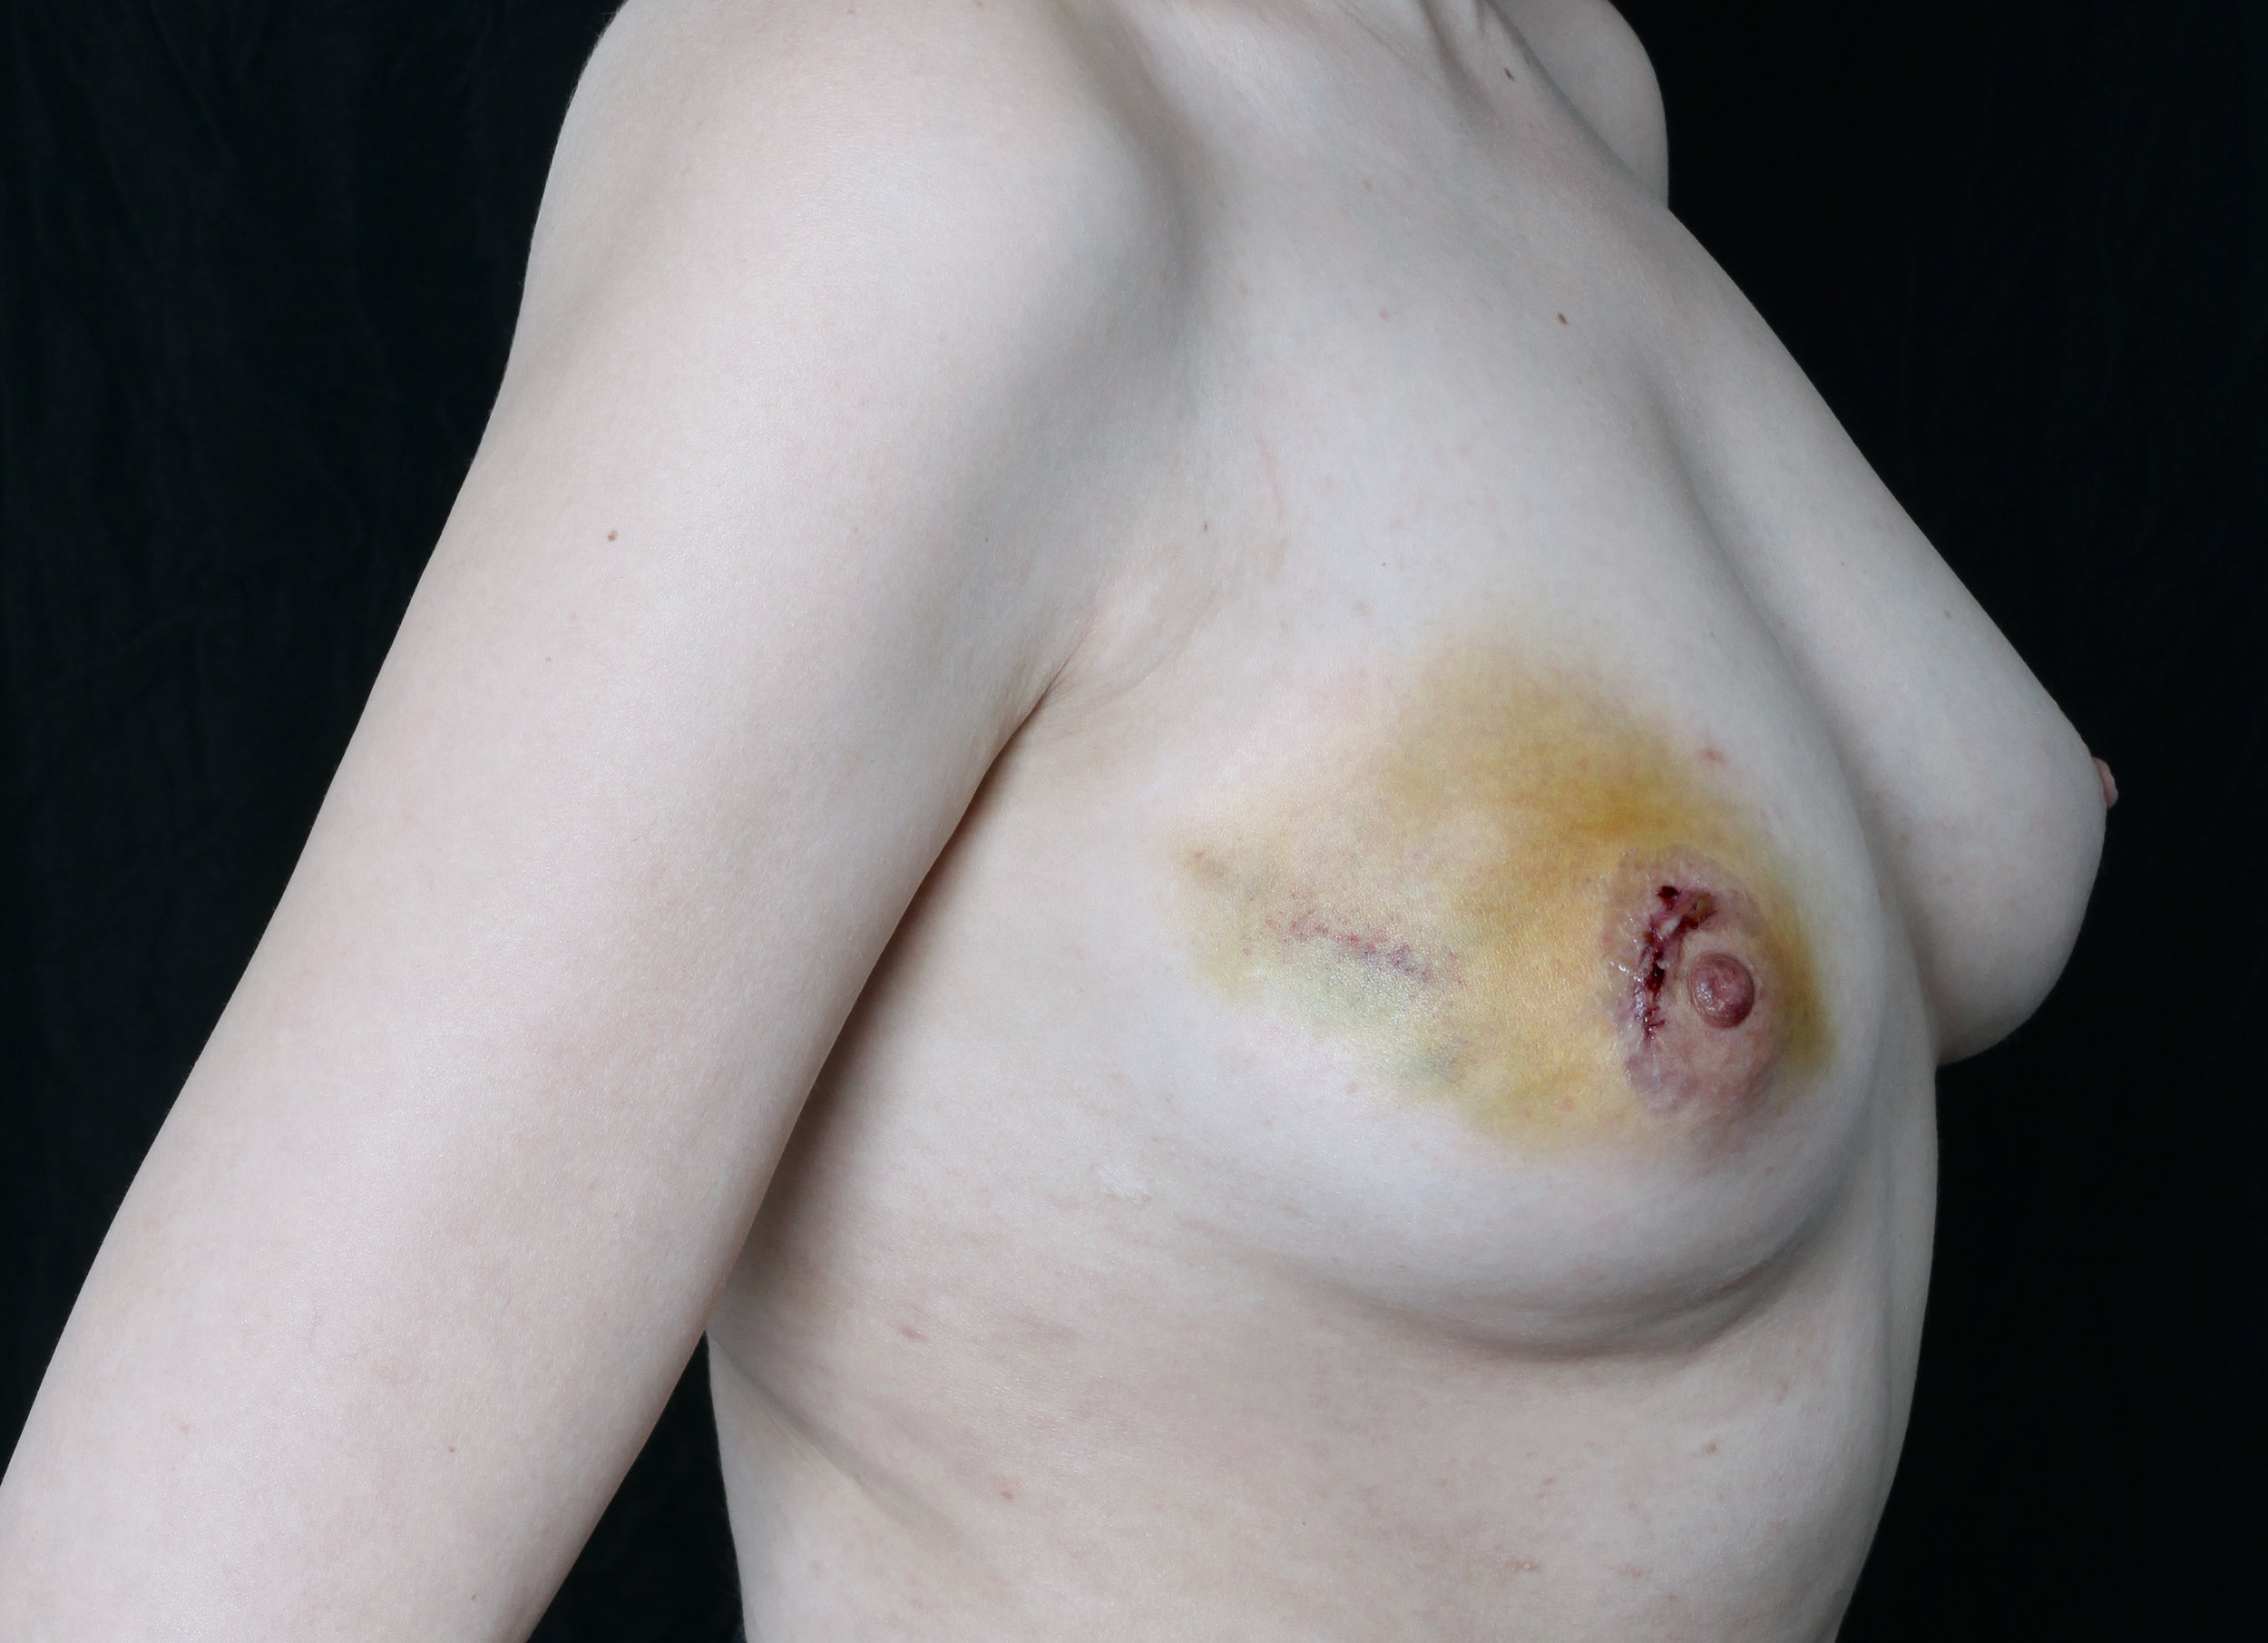 Recovery , 2017 A self-portrait taken one week after Mills' second surgery to remove a benign fibroadenoma from her right breast.